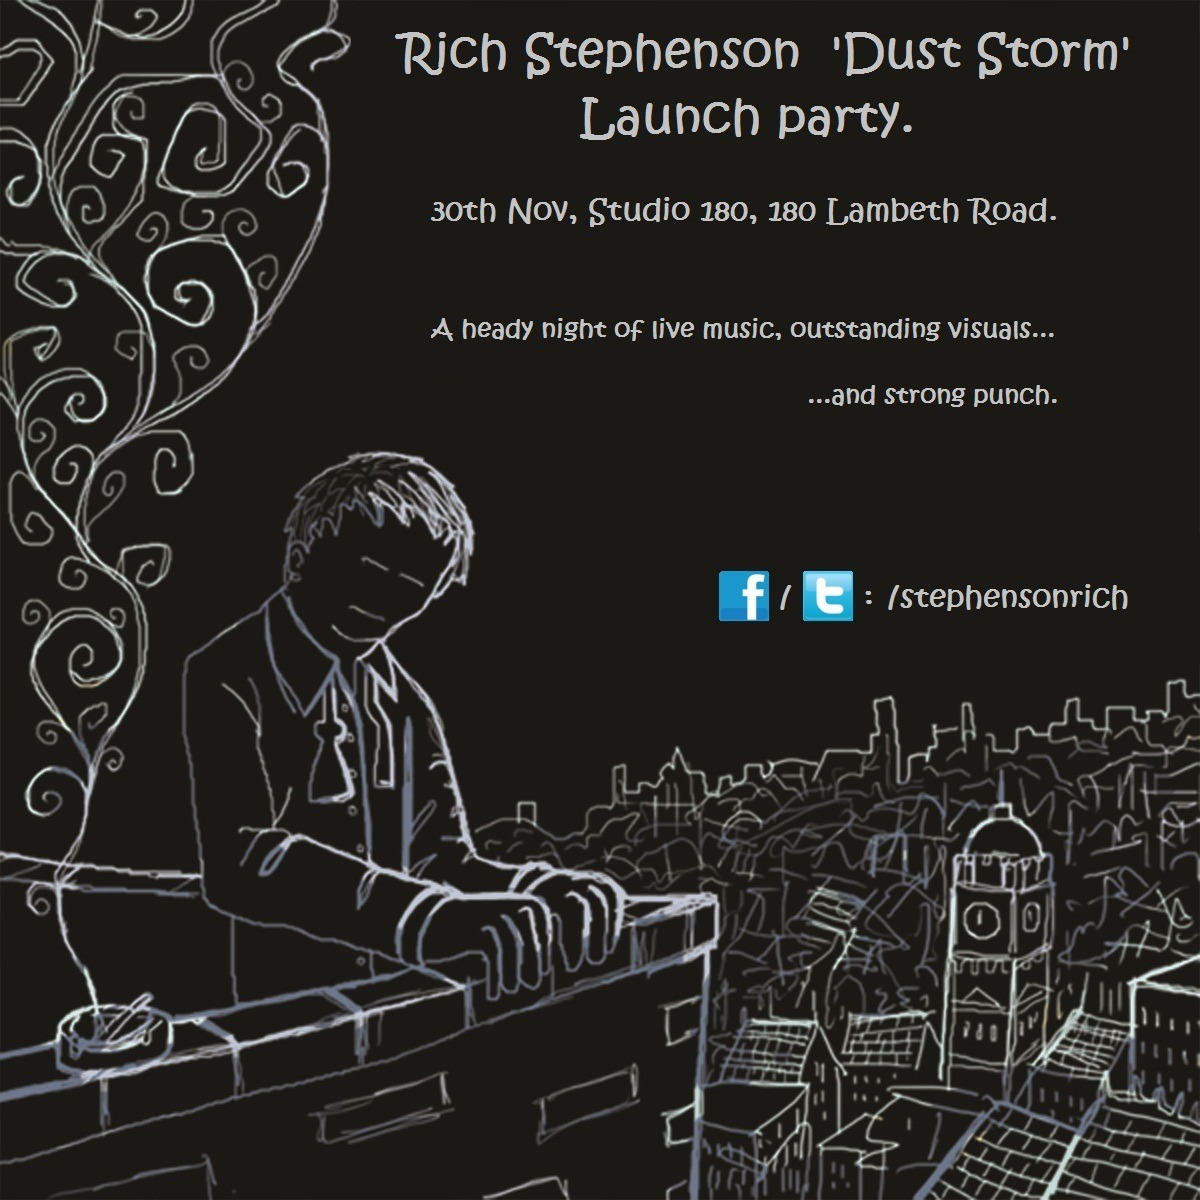 The Launch Party for ' Dust Storm' by Rich Stephenson. This is a Private Event.